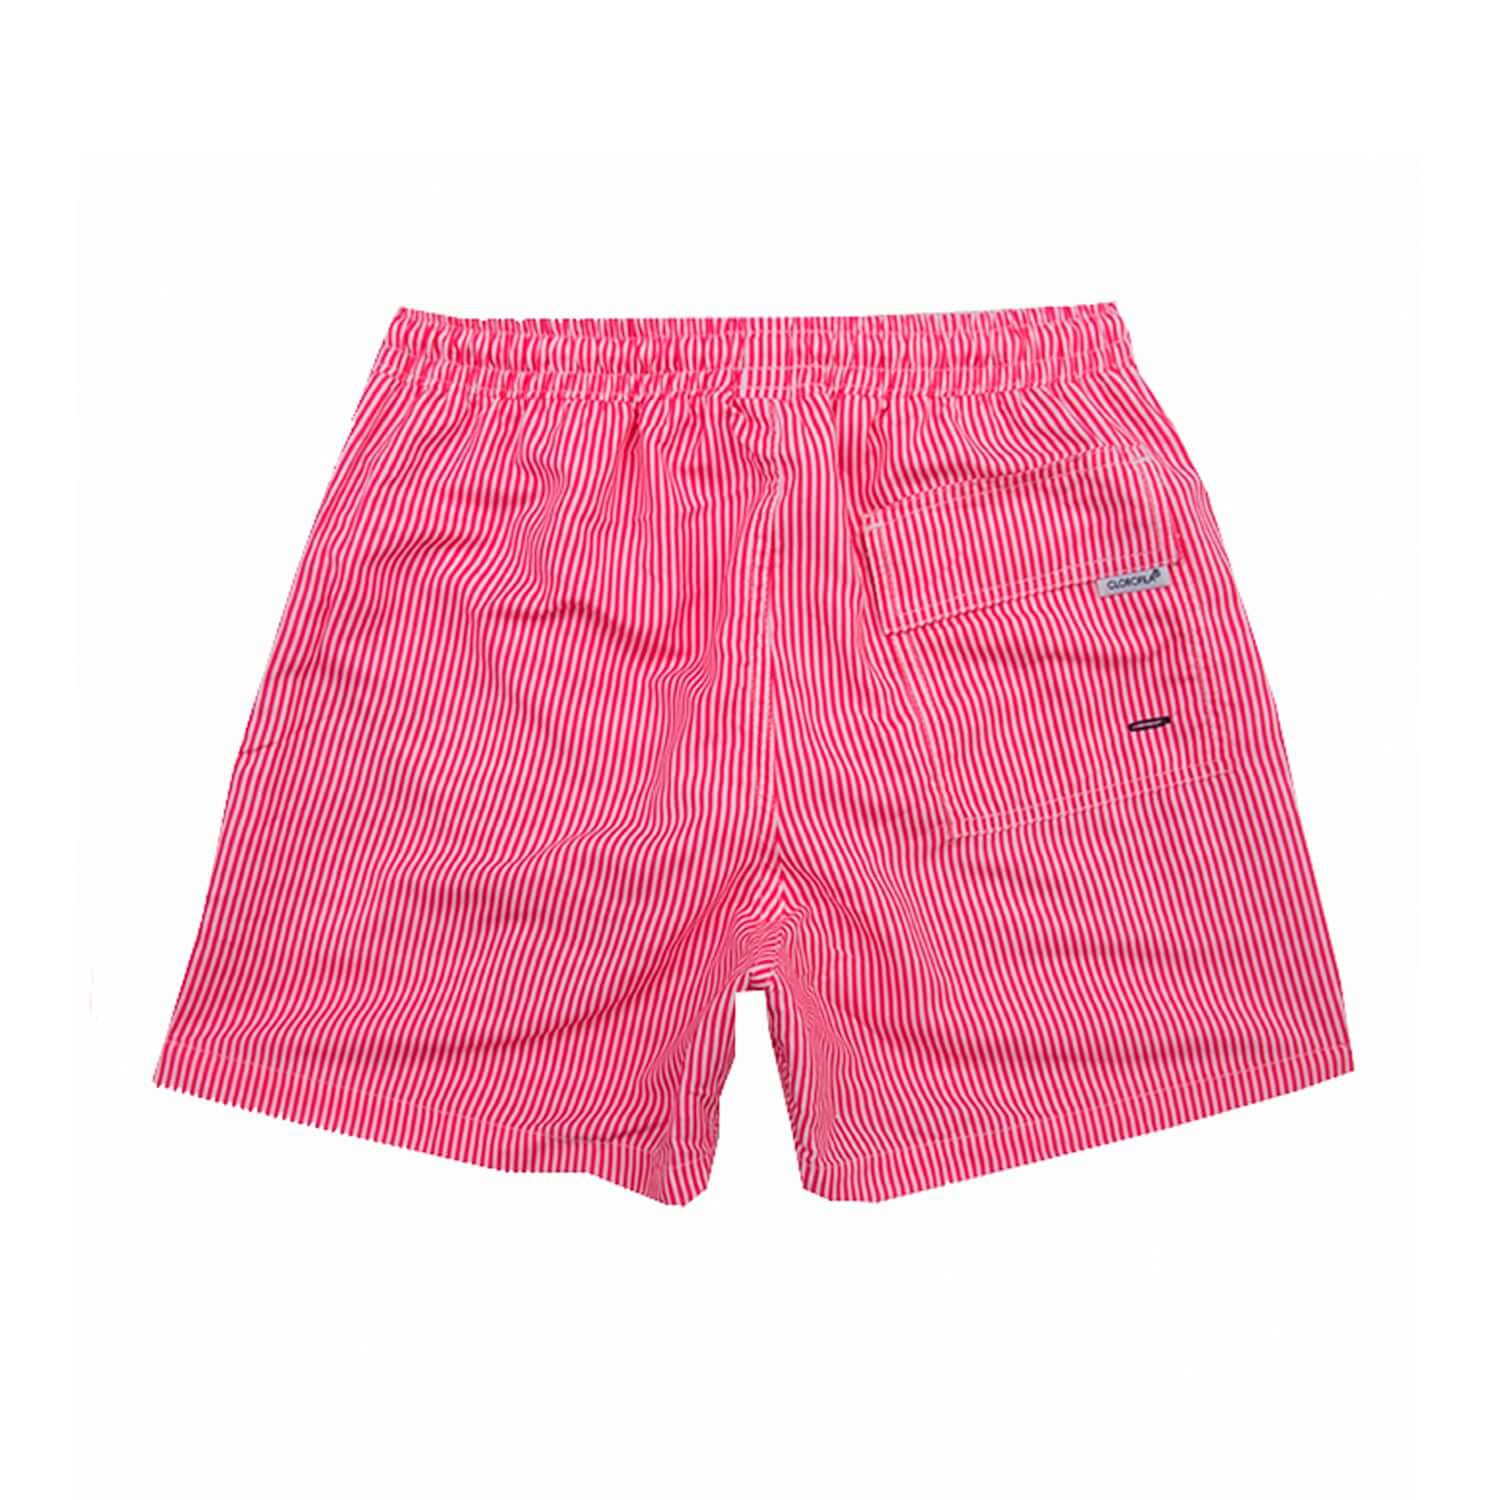 STRIPES PINK - Clorofila Sea Wear